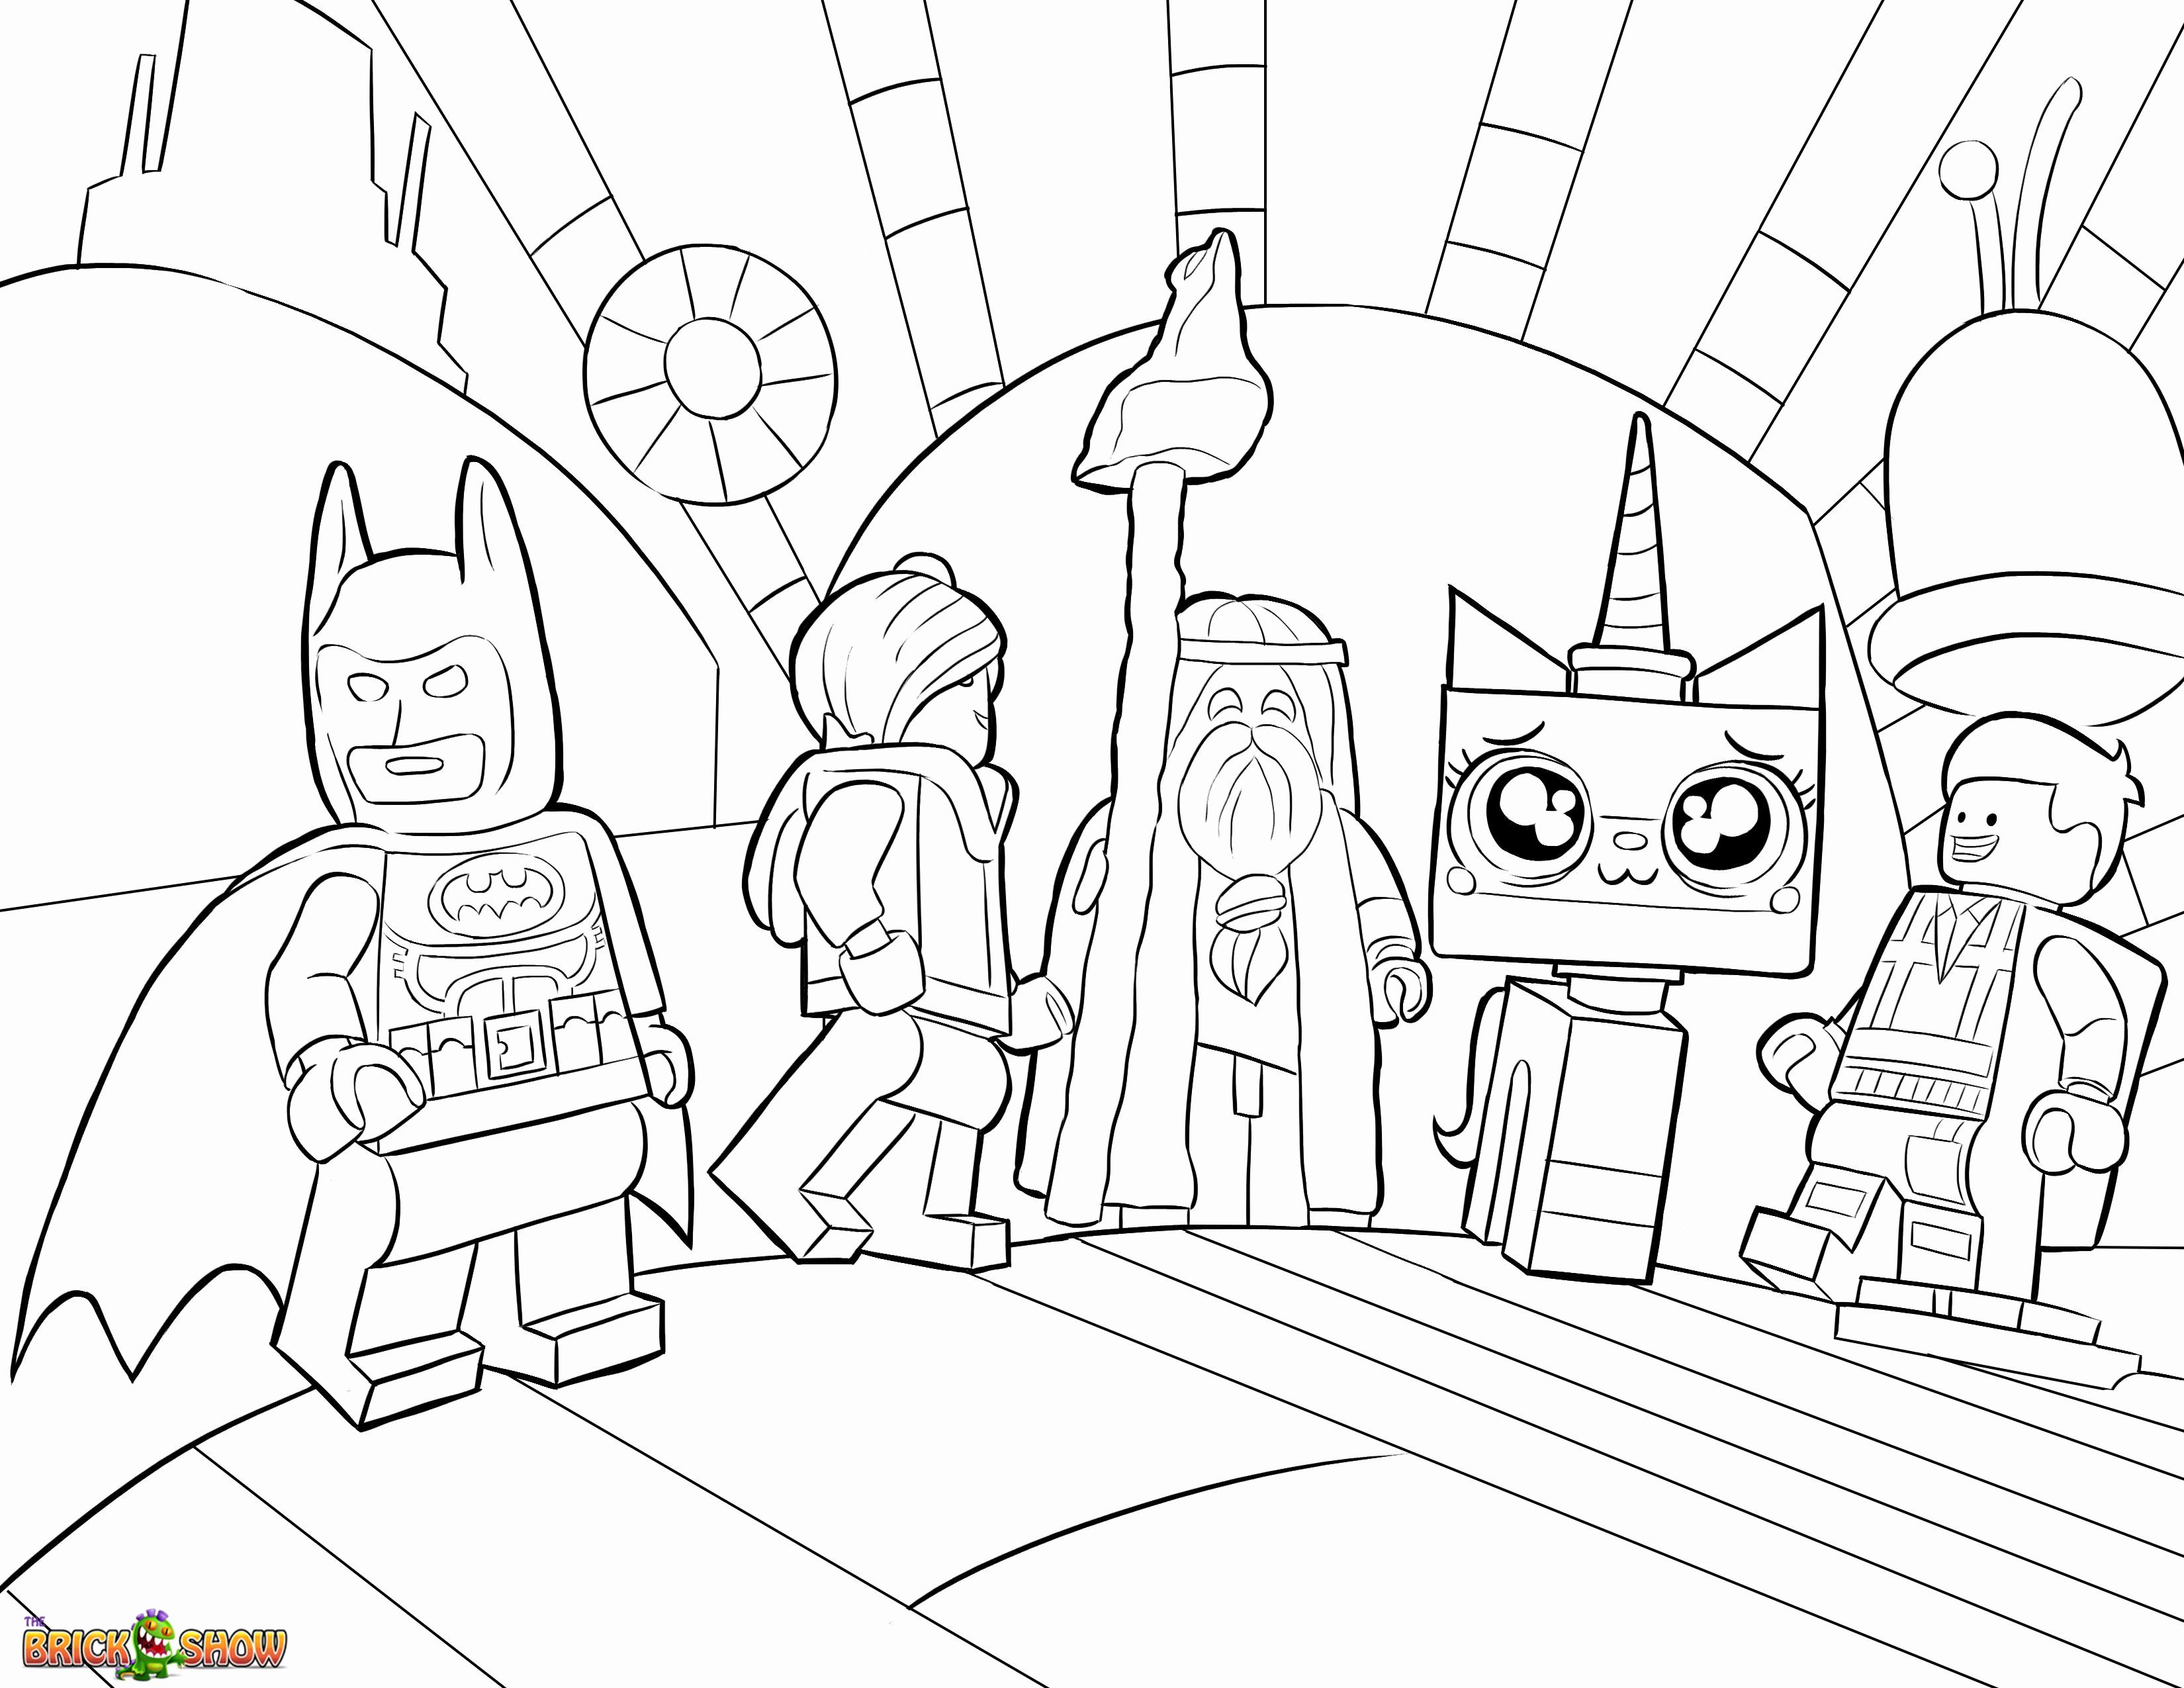 3300x2550 Coloring Pages Lego Friends Elegant Coloring Sheets Lego Friends